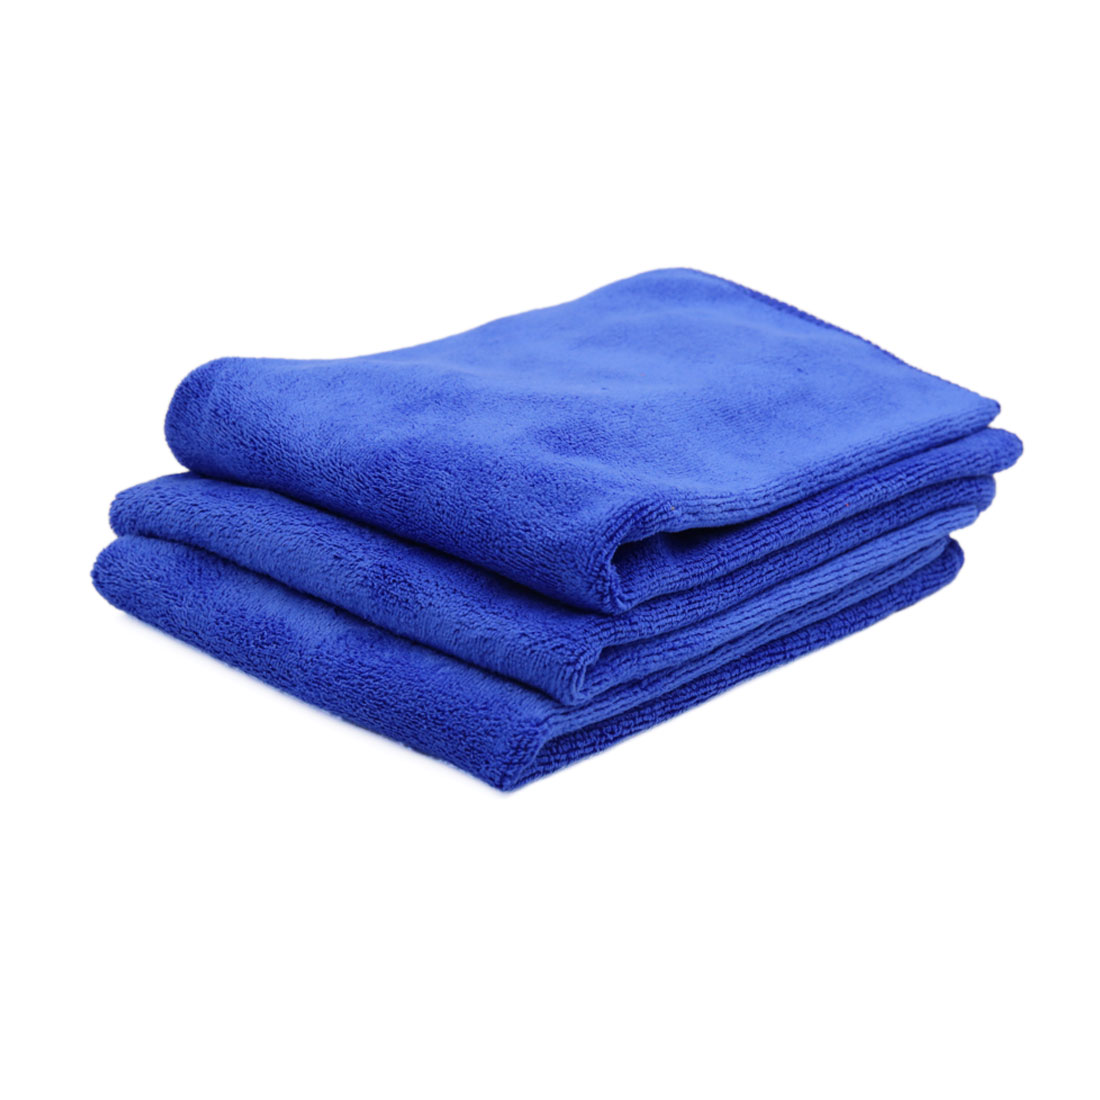 3pcs 40 x 40cm 400GSM Microfiber Car Cleaning Towels Drying Washing Cloth Green